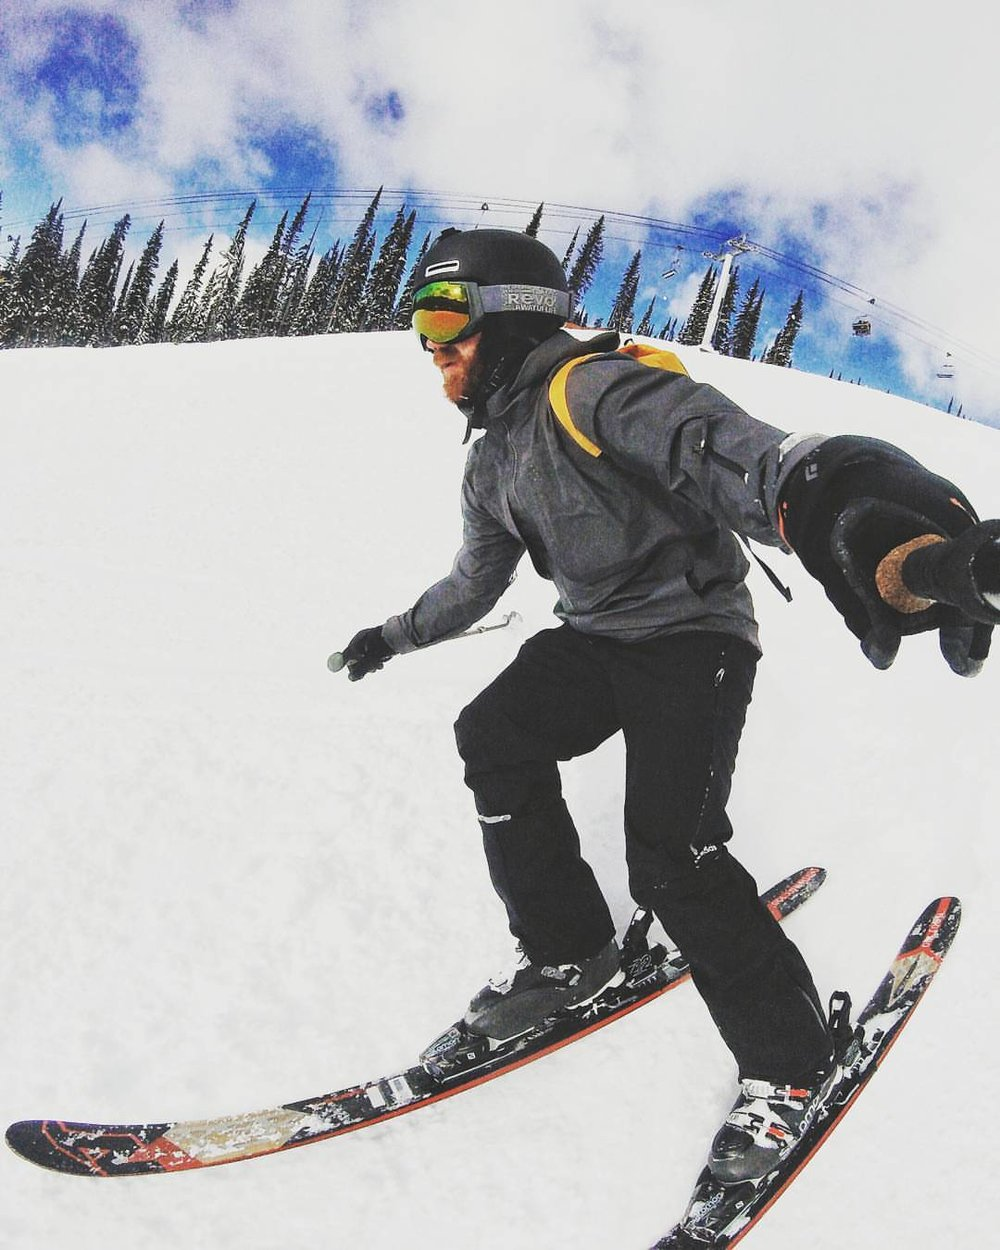 Practice skills at home in your socks before hitting the slopes. This can provide a huge benefit when adding downhill speed into the equation.